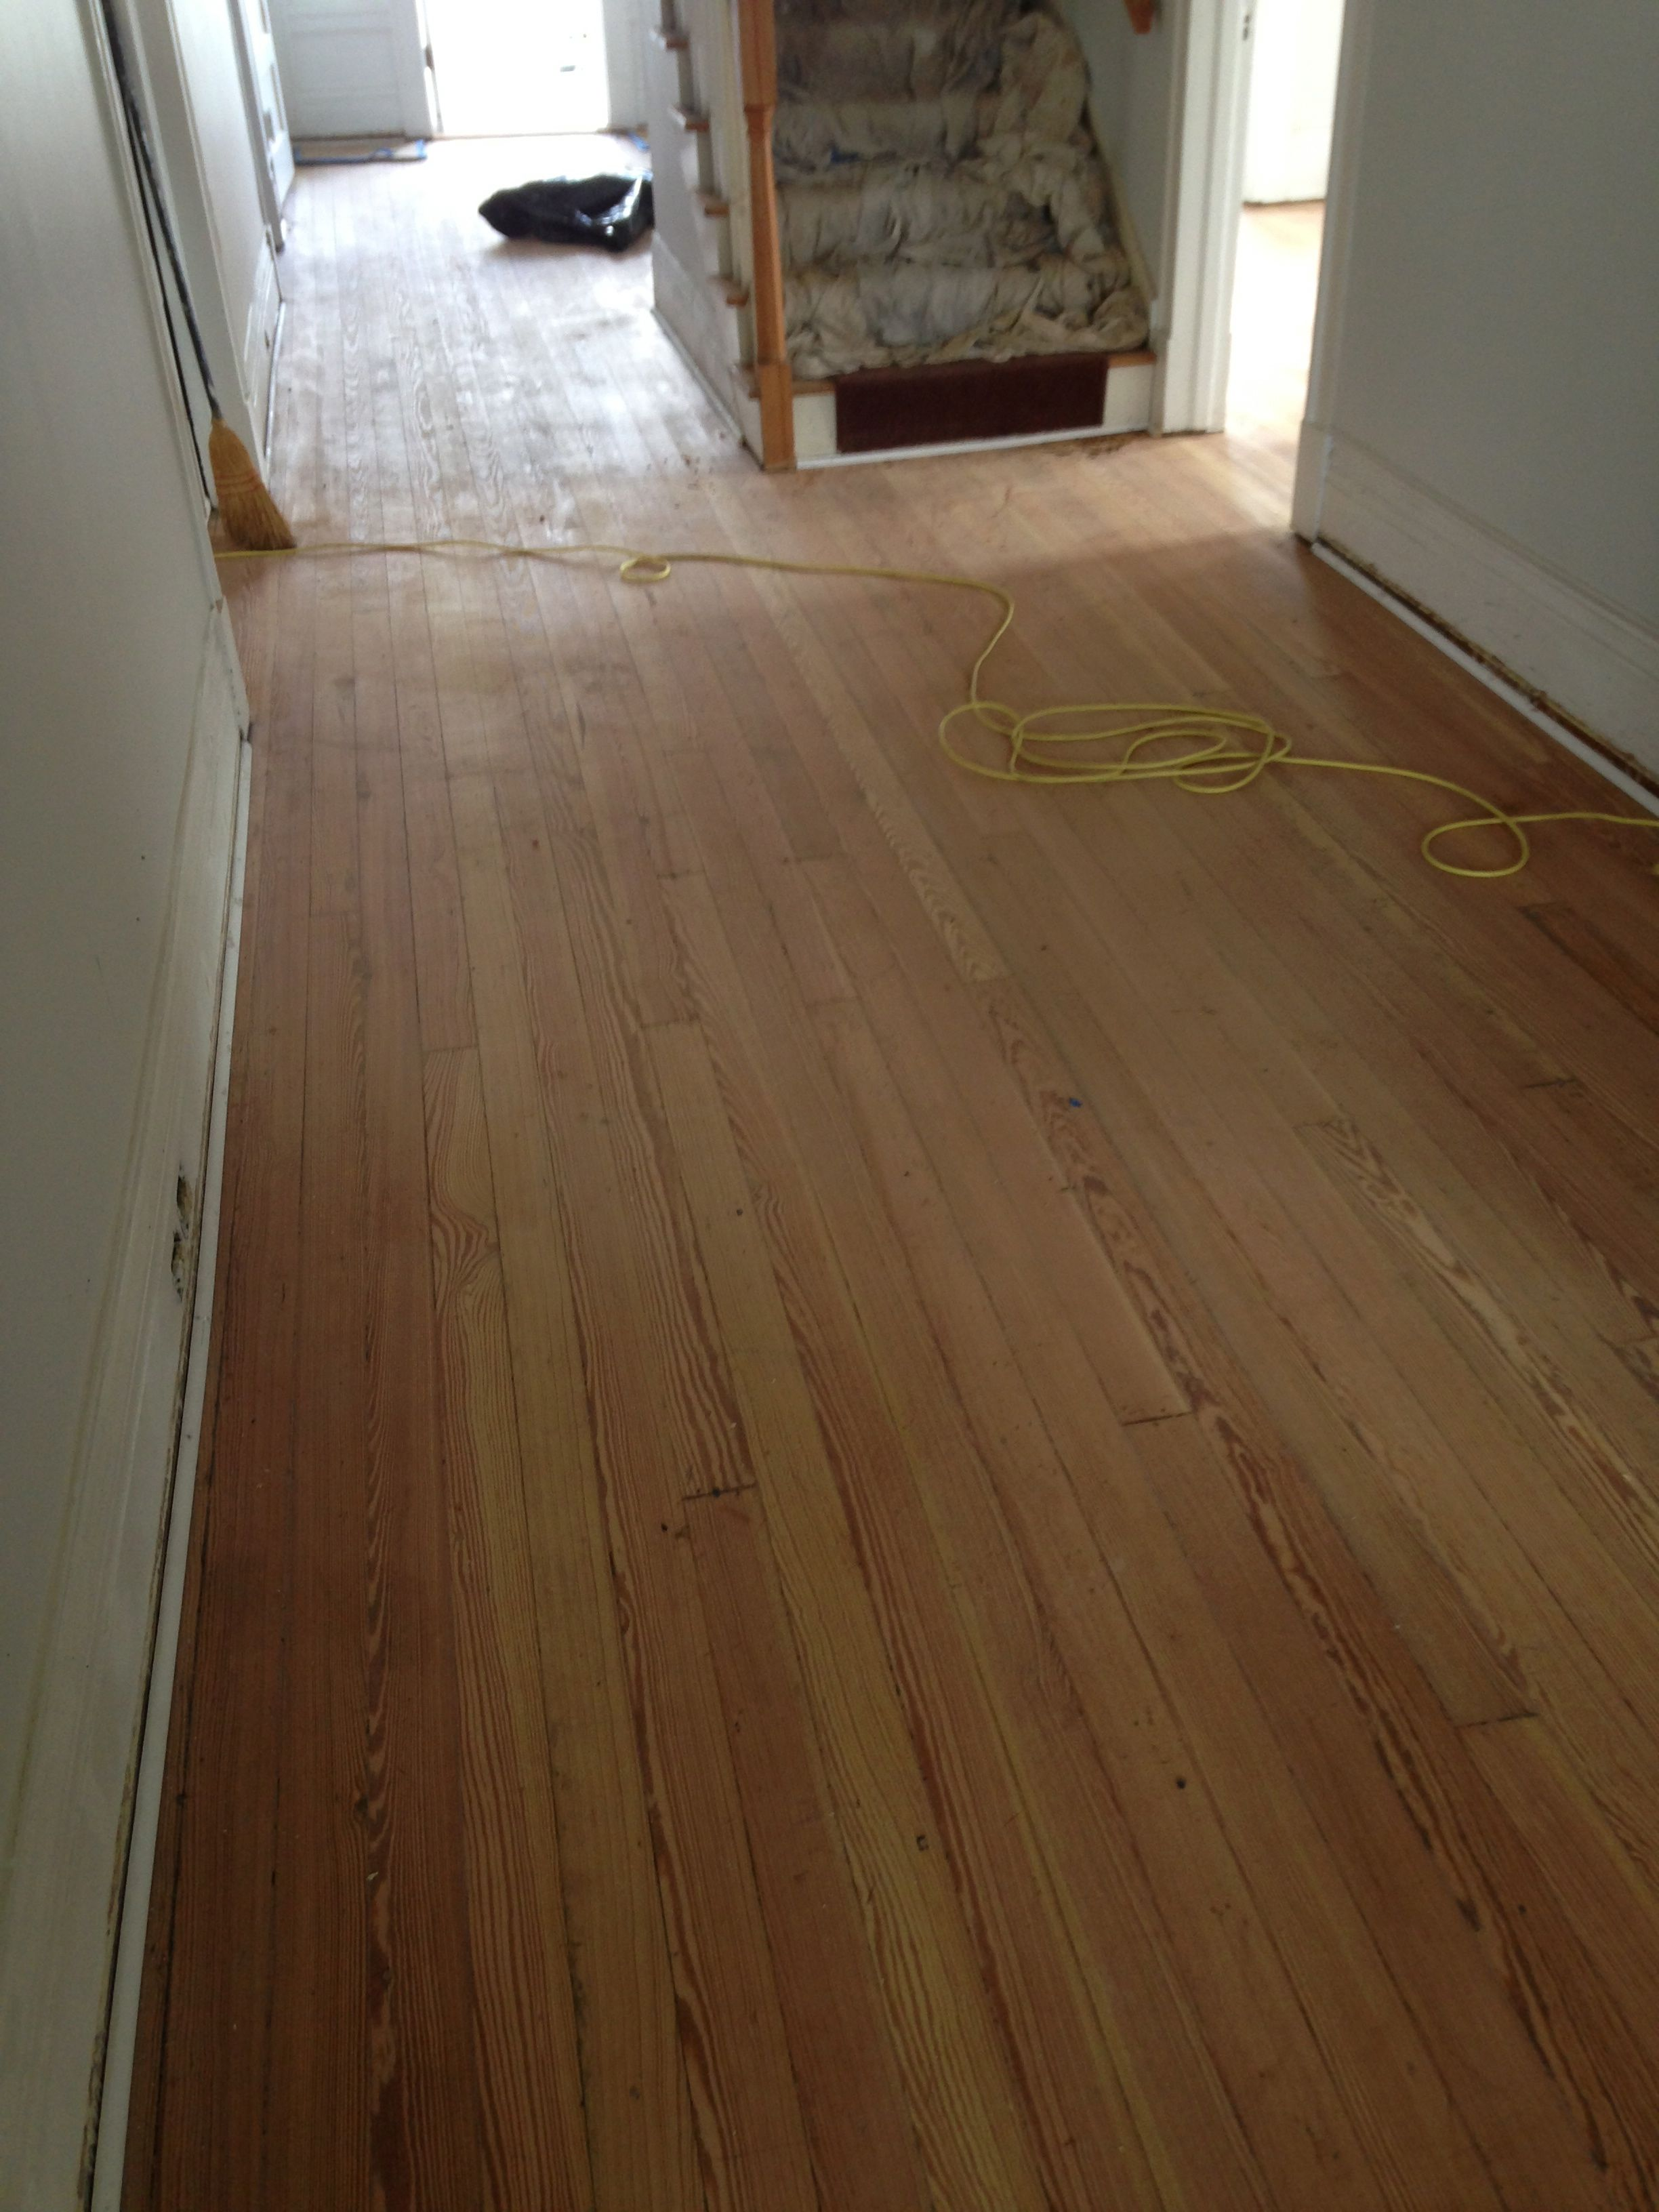 A picture of completely sanded hardwood previously covered in tar.